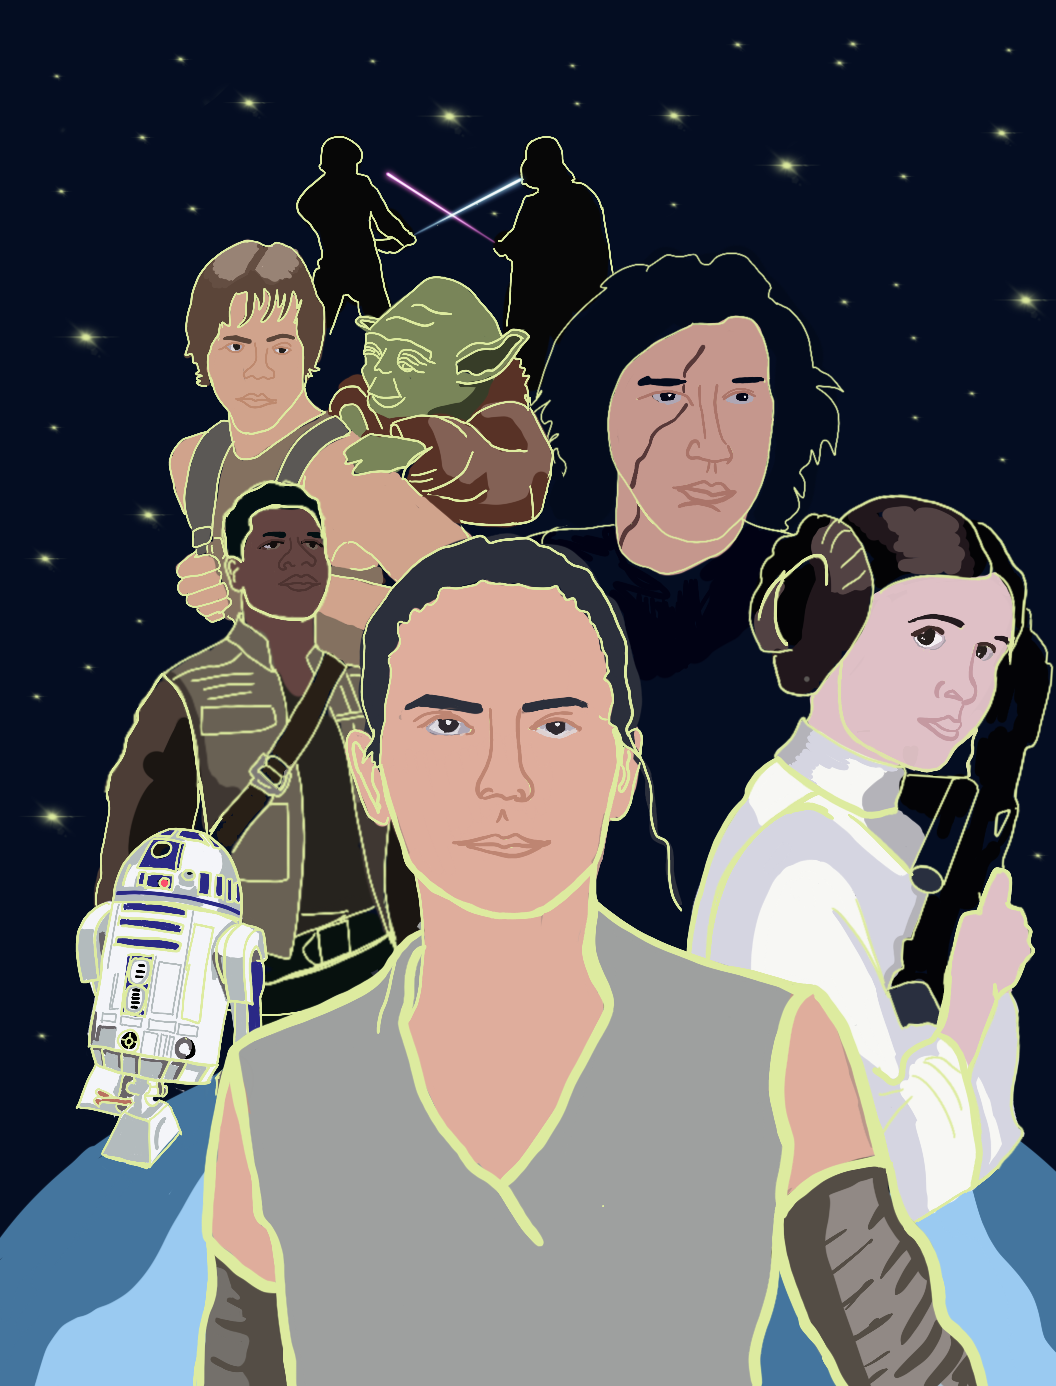 Inconsistency Of Star Wars Sequel Series Fails Fans In Trying To Appease Them Daily Bruin